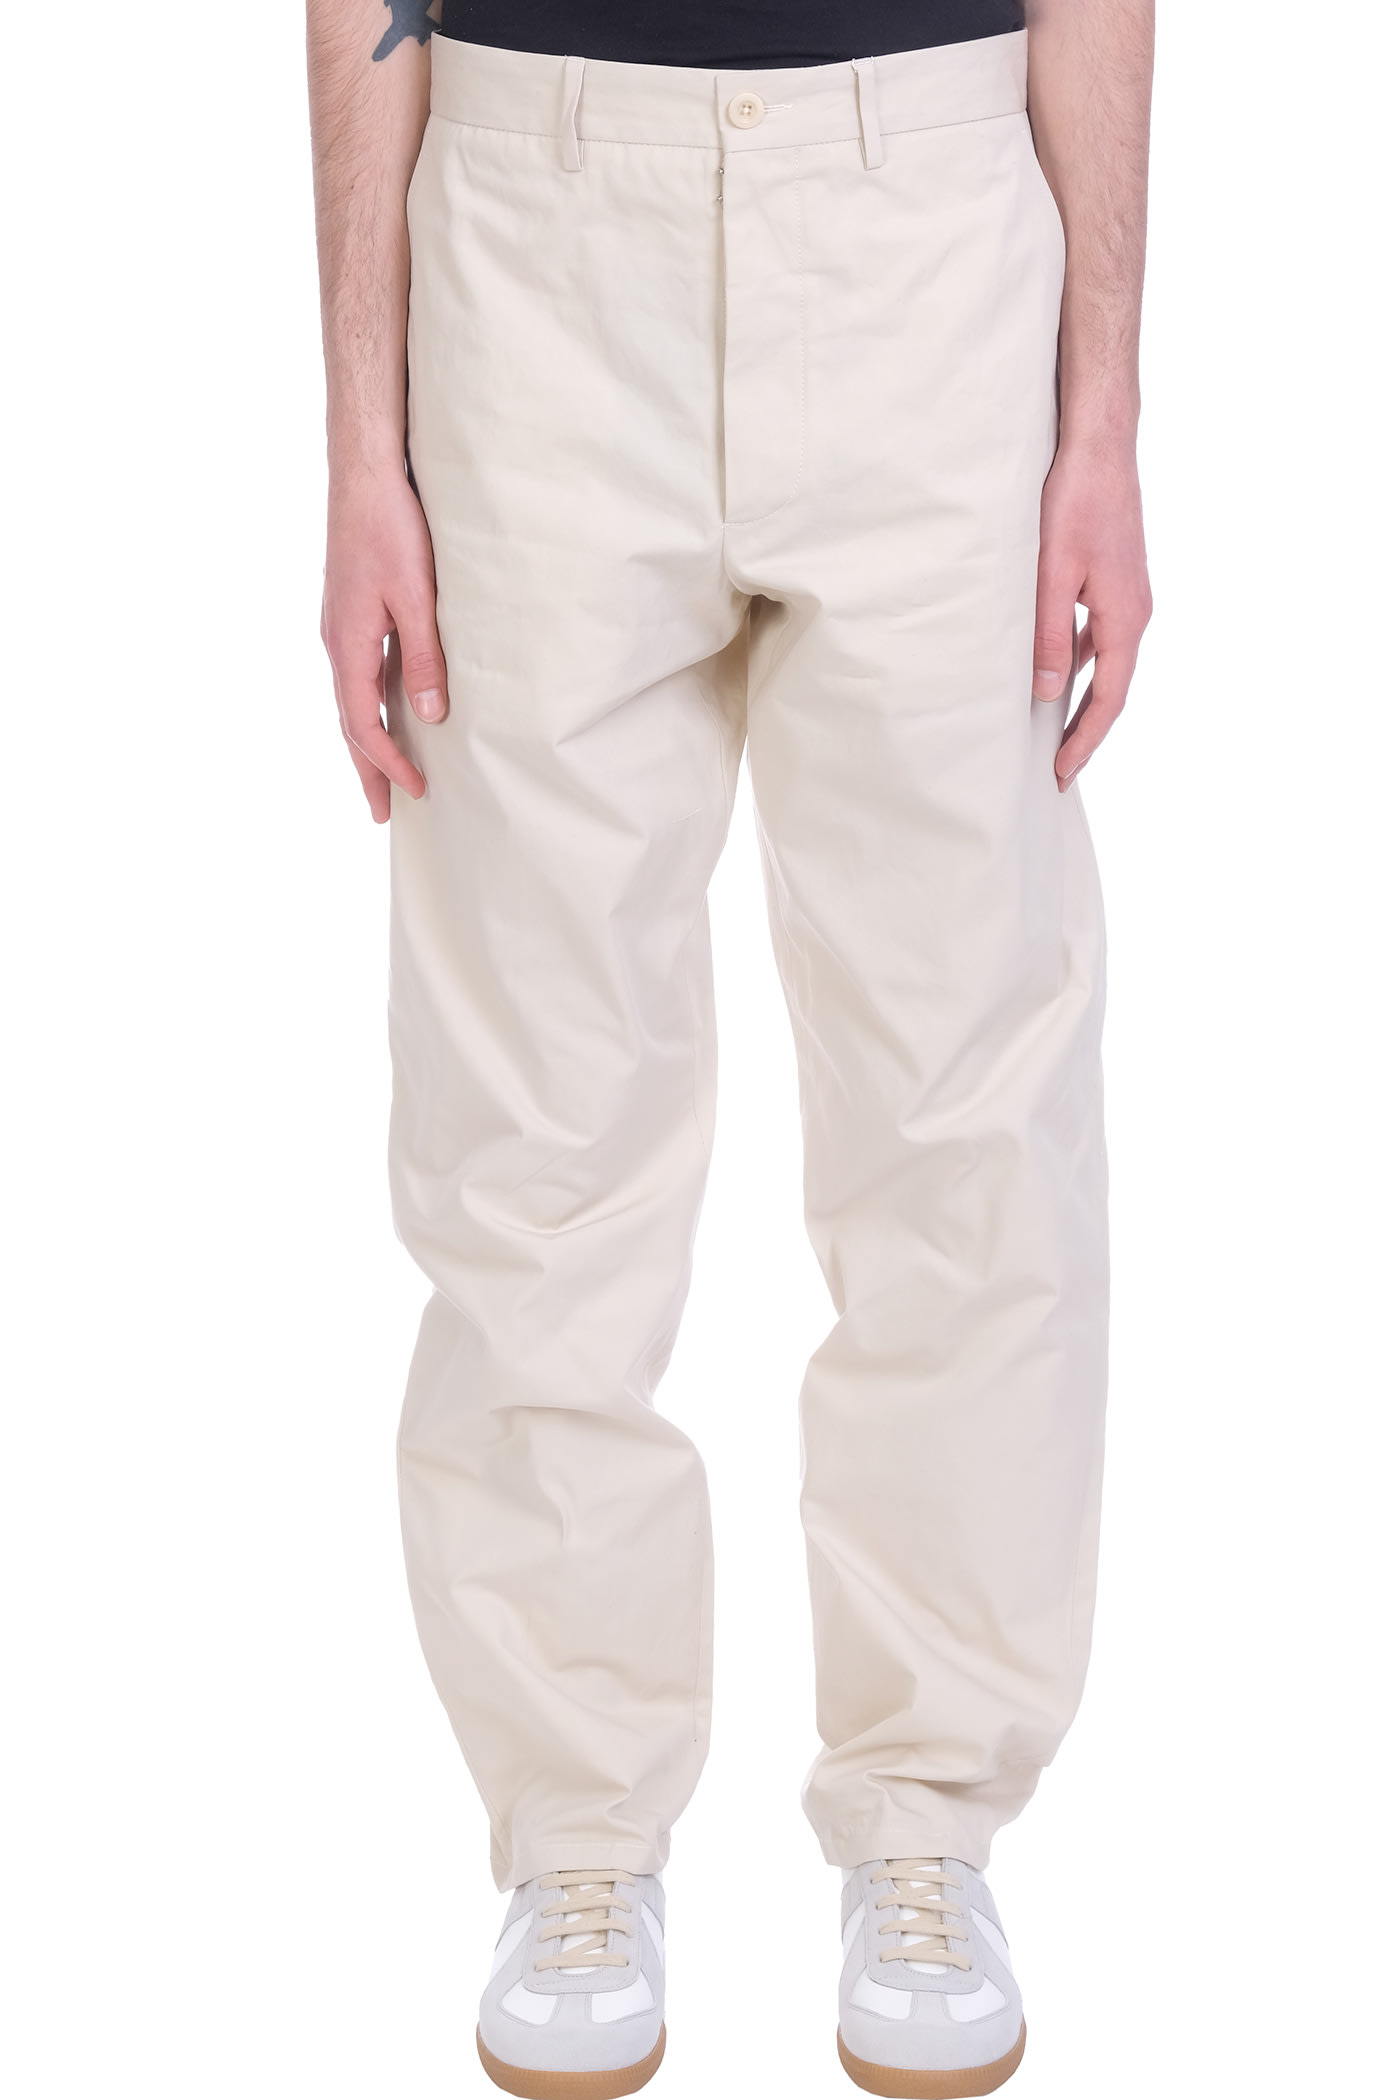 Maison Margiela Pants In Beige Cotton